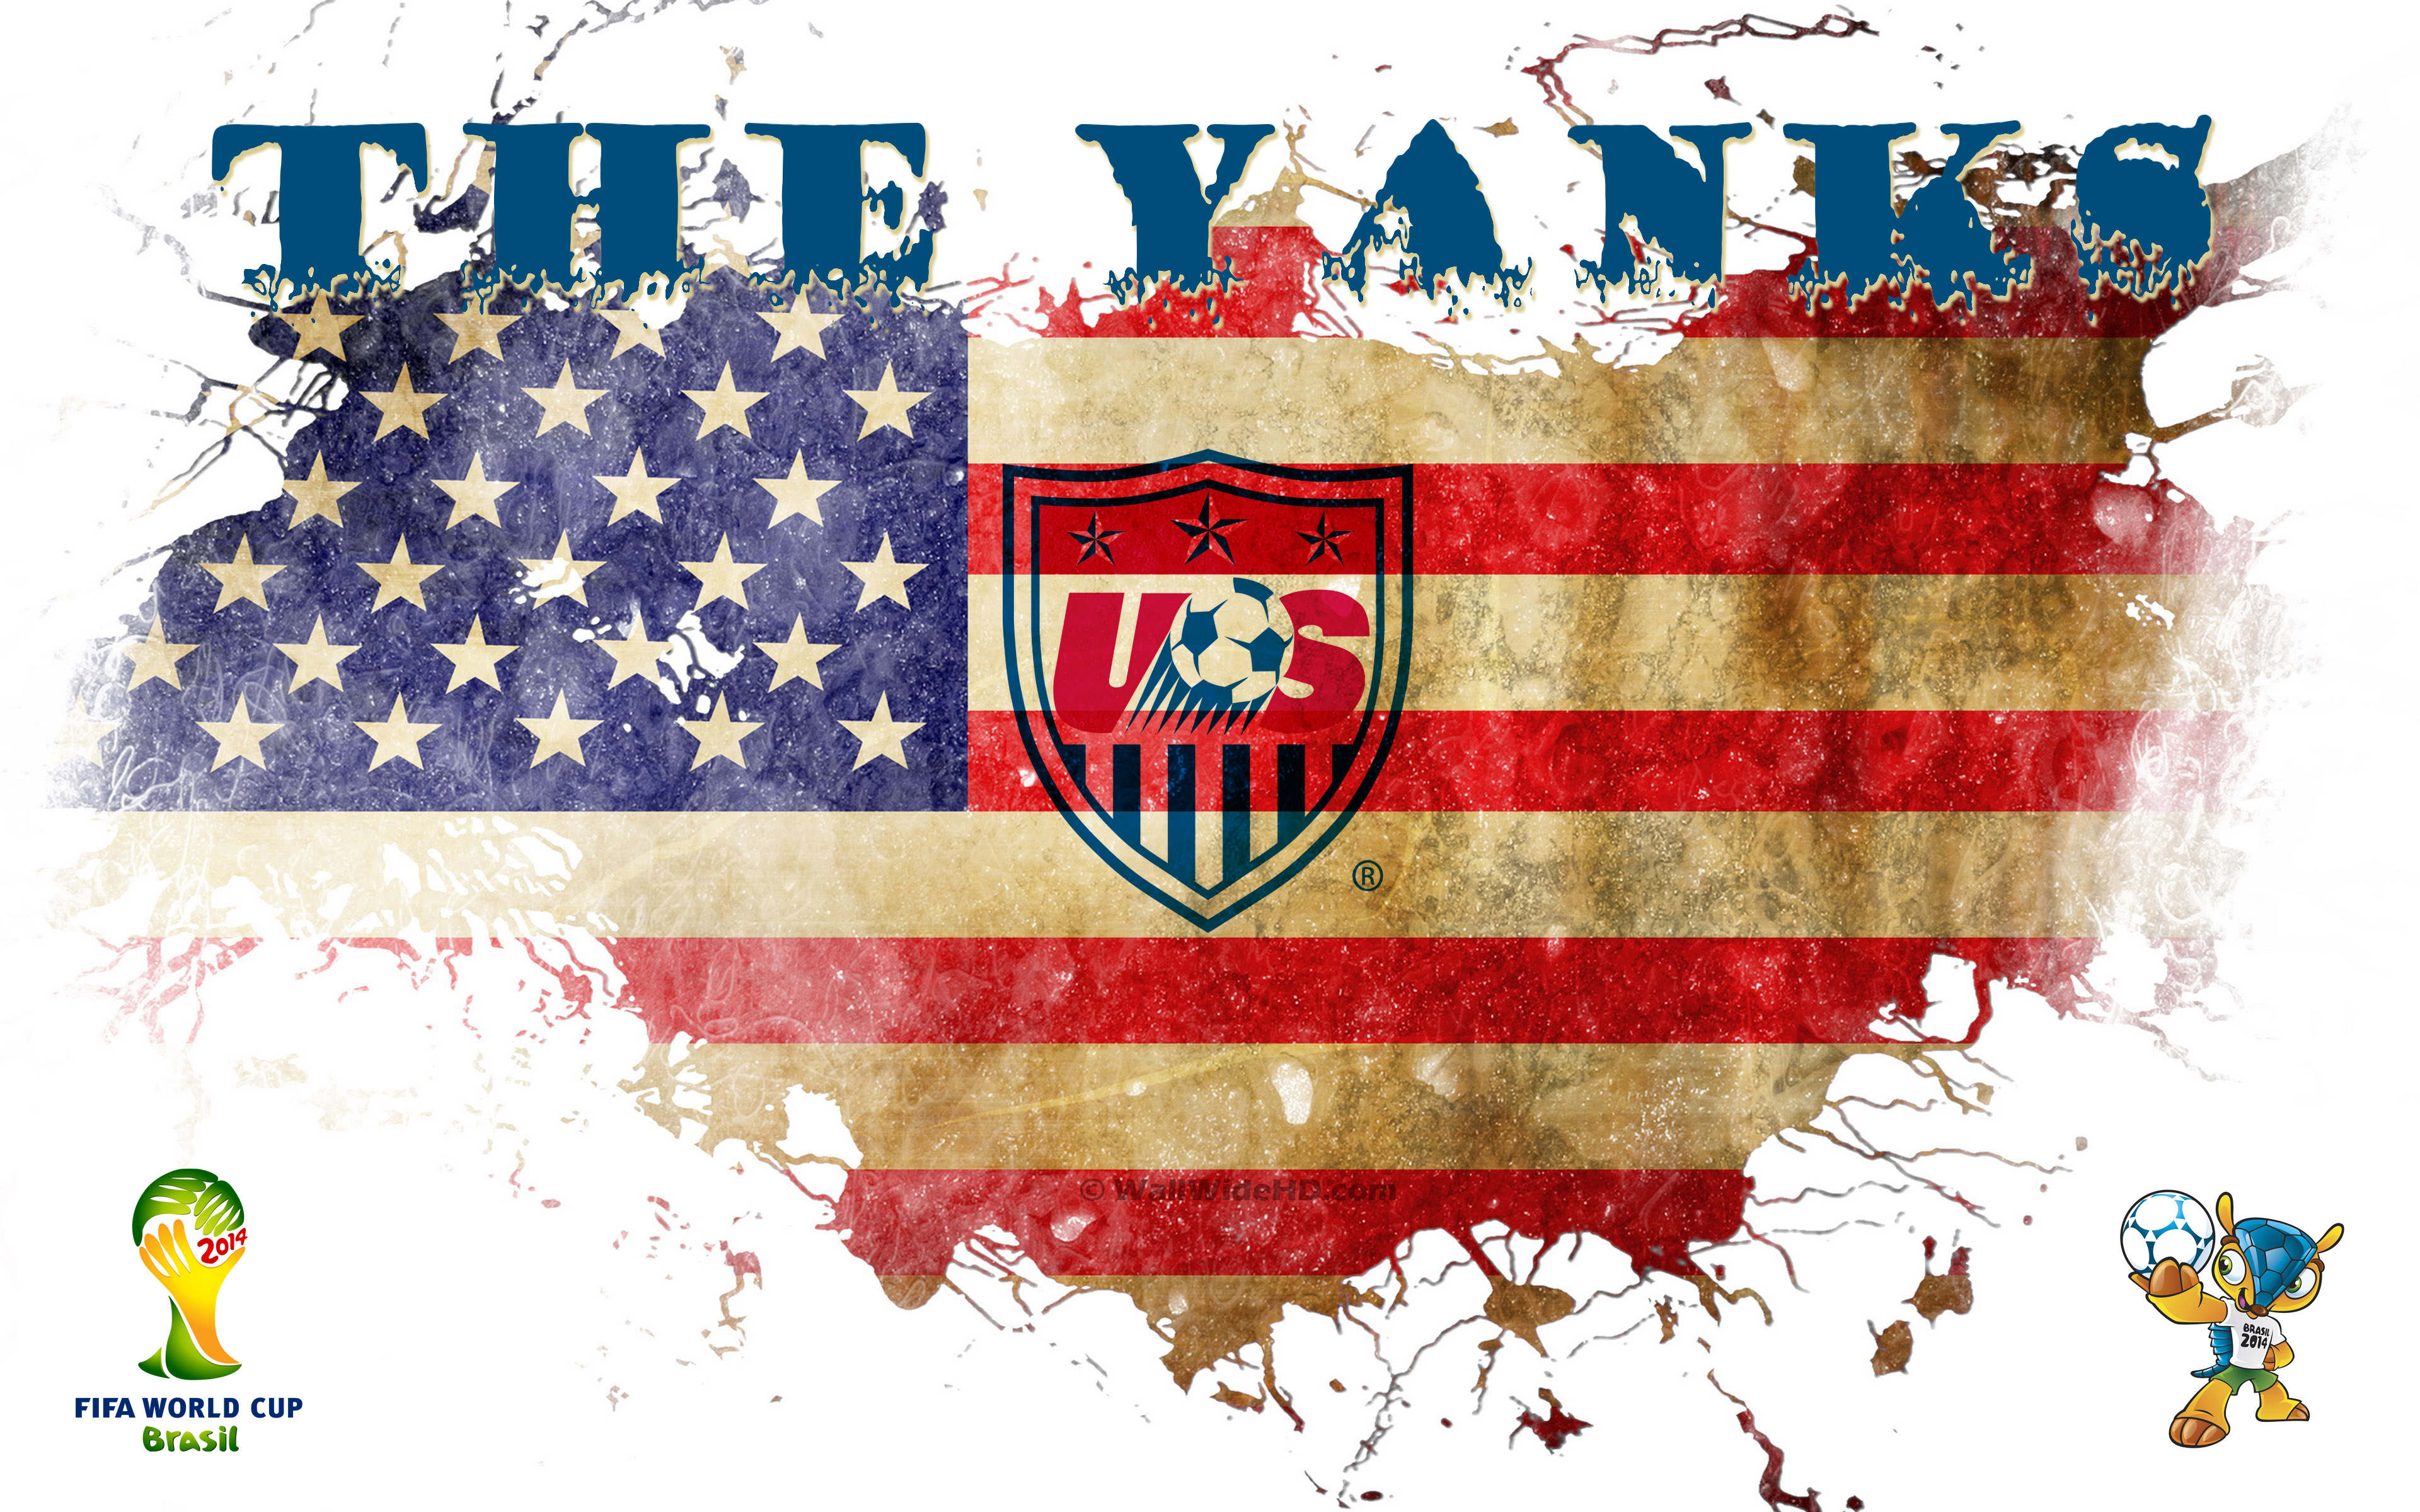 Usa Soccer Wallpaper 2015 112 images in Collection Page 3 3840x2400